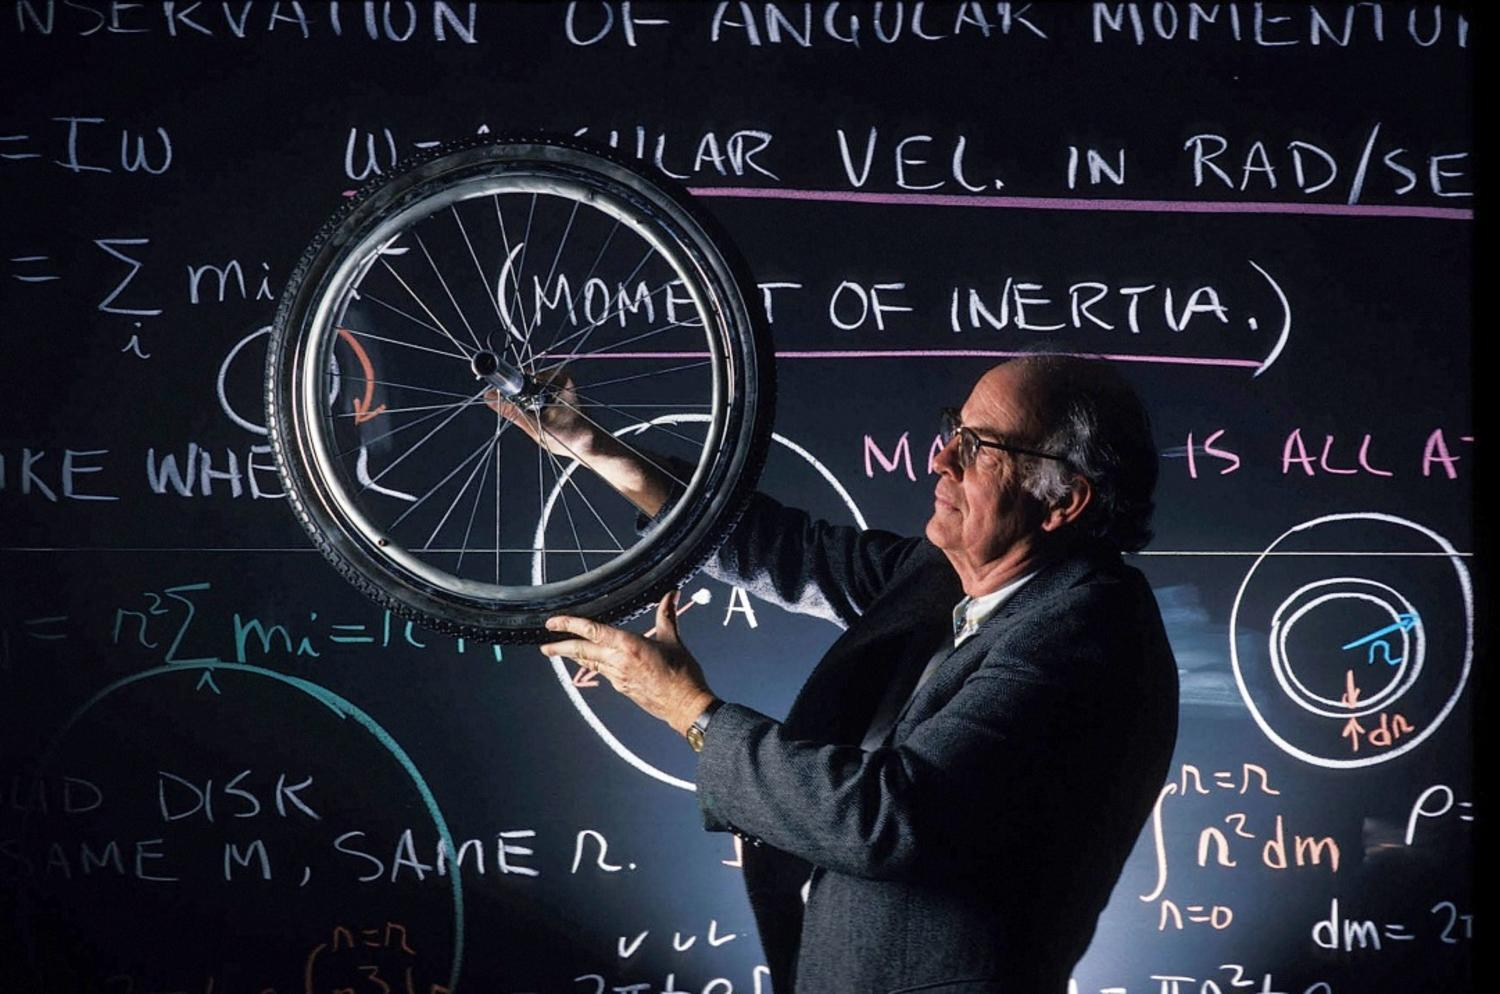 Professor in the classroom in front of a blackboard